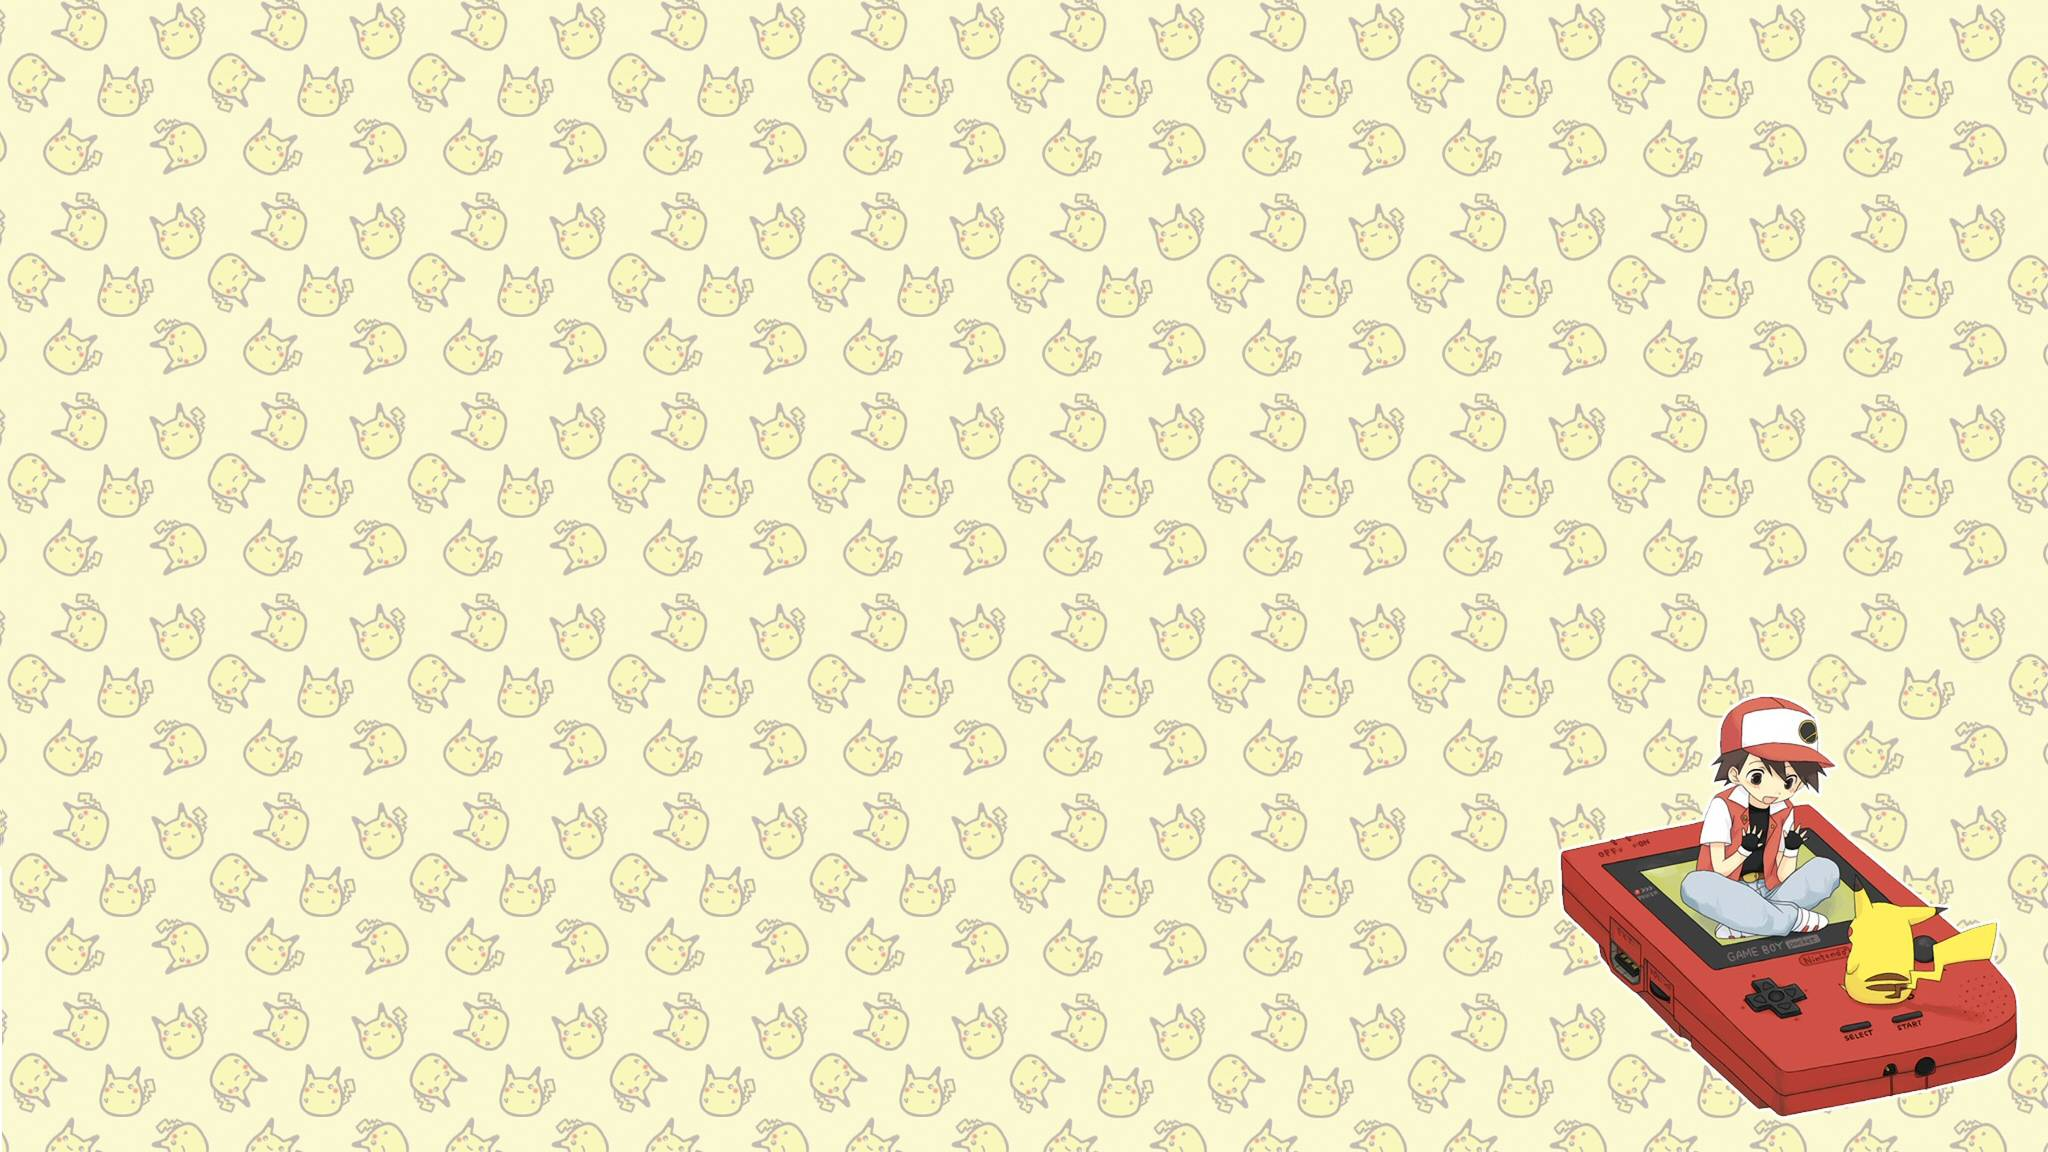 Pokemon Pikachu 20481152 Wallpaper 933499 2048x1152